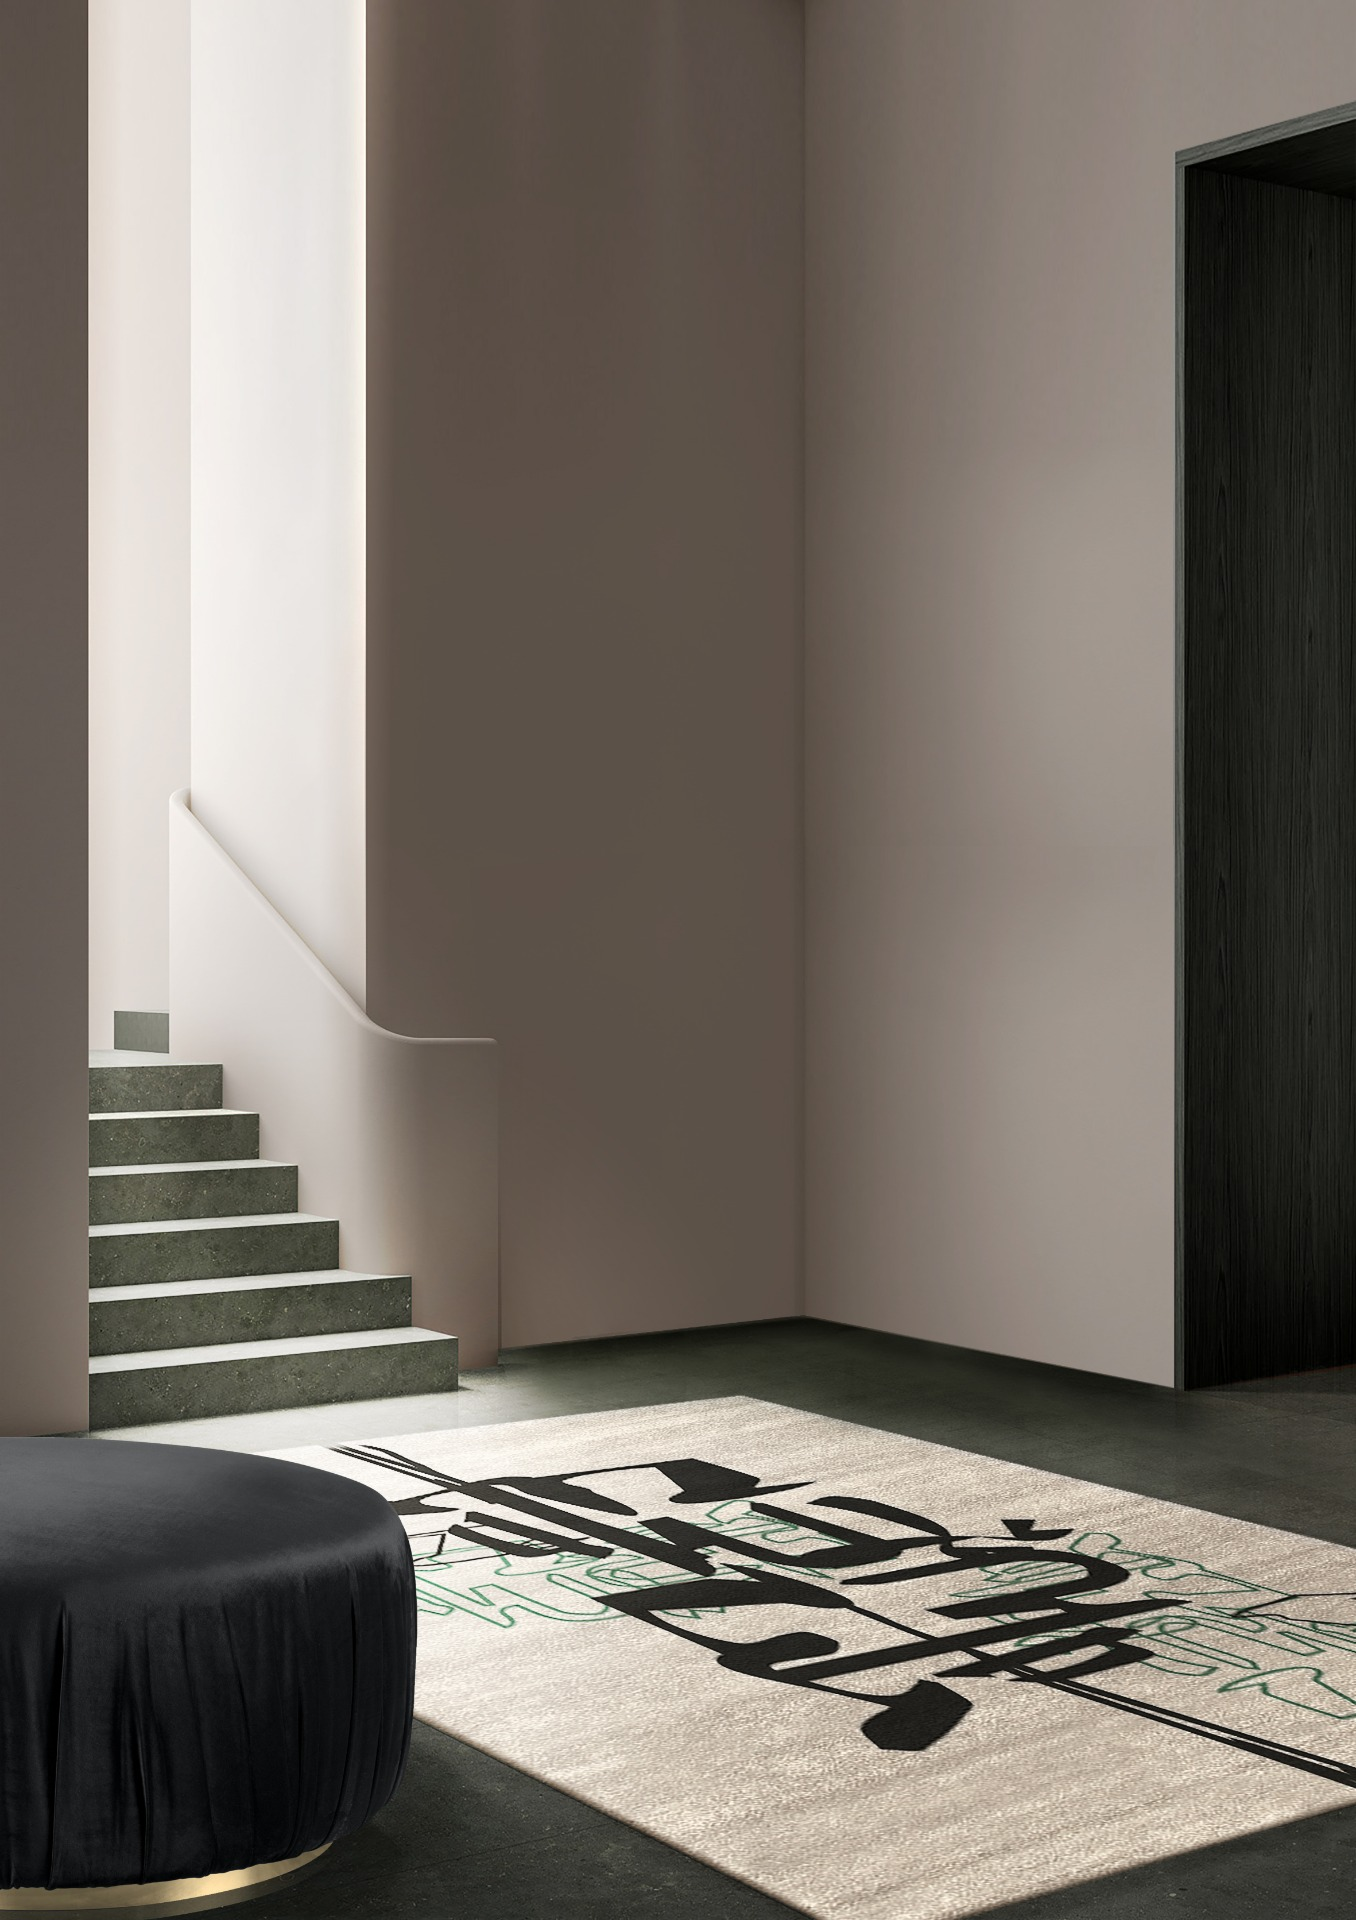 Rug'Society Collections: Meet The Rug Of Your Dreams